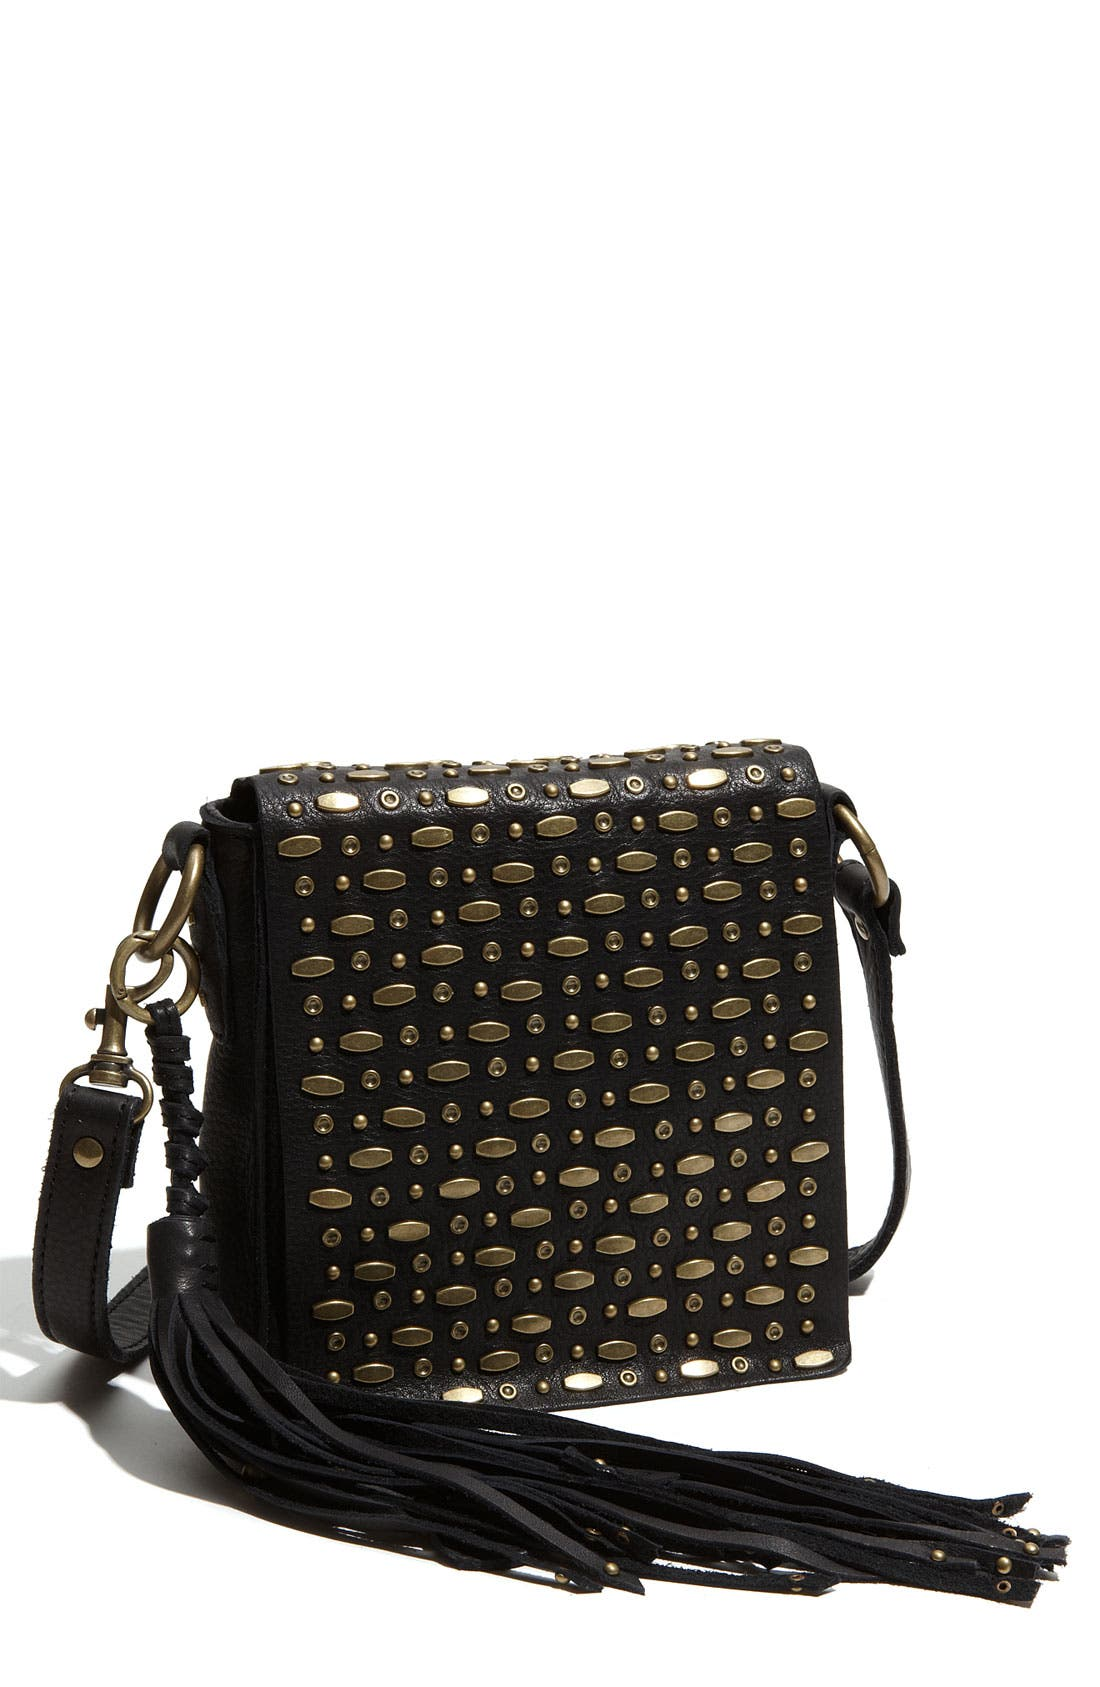 Main Image - Revel NY 'Nolita' Crossbody Flap Bag